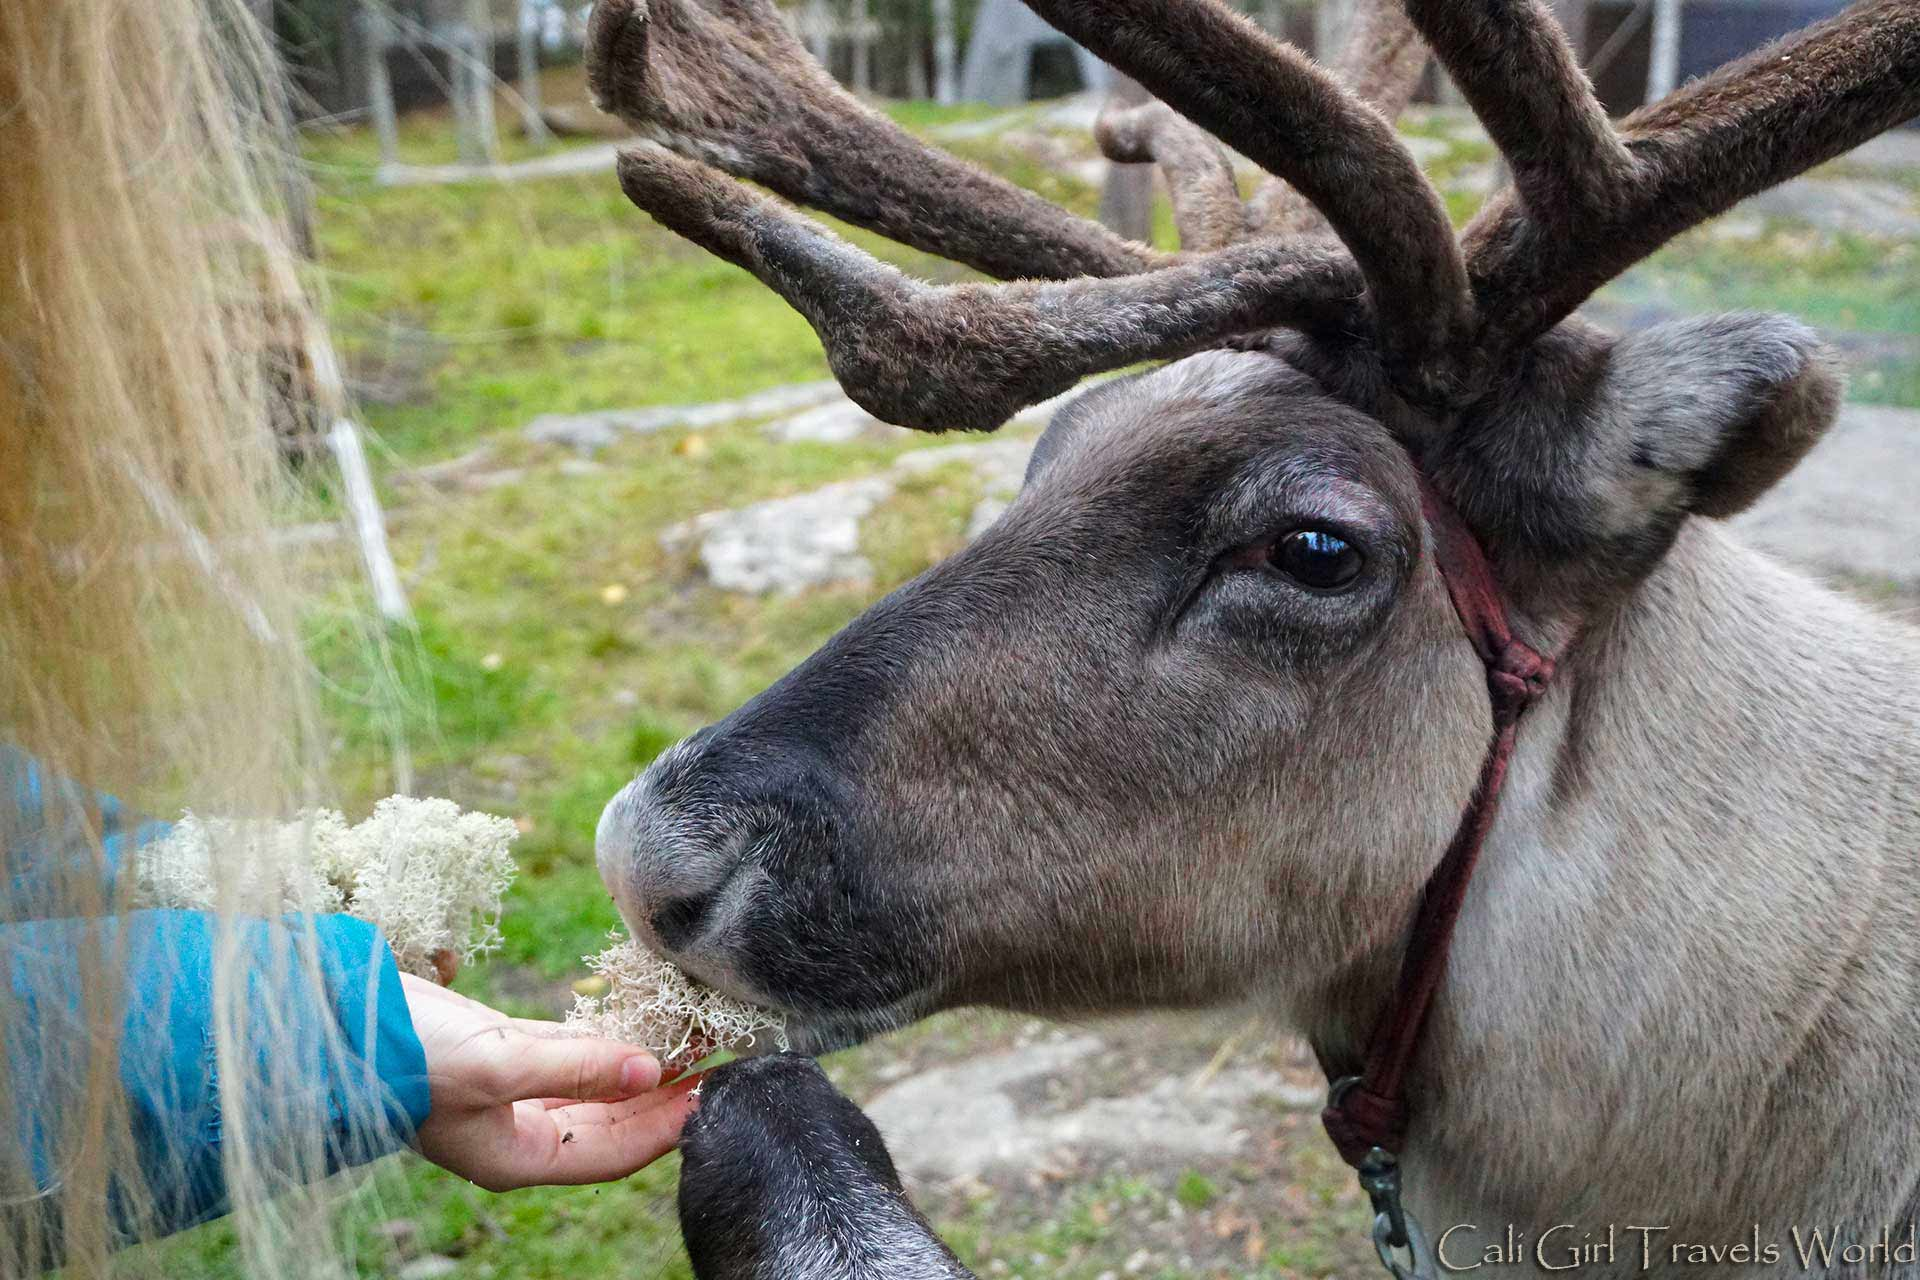 Feeding reindeer lichen in Santa Claus Village.